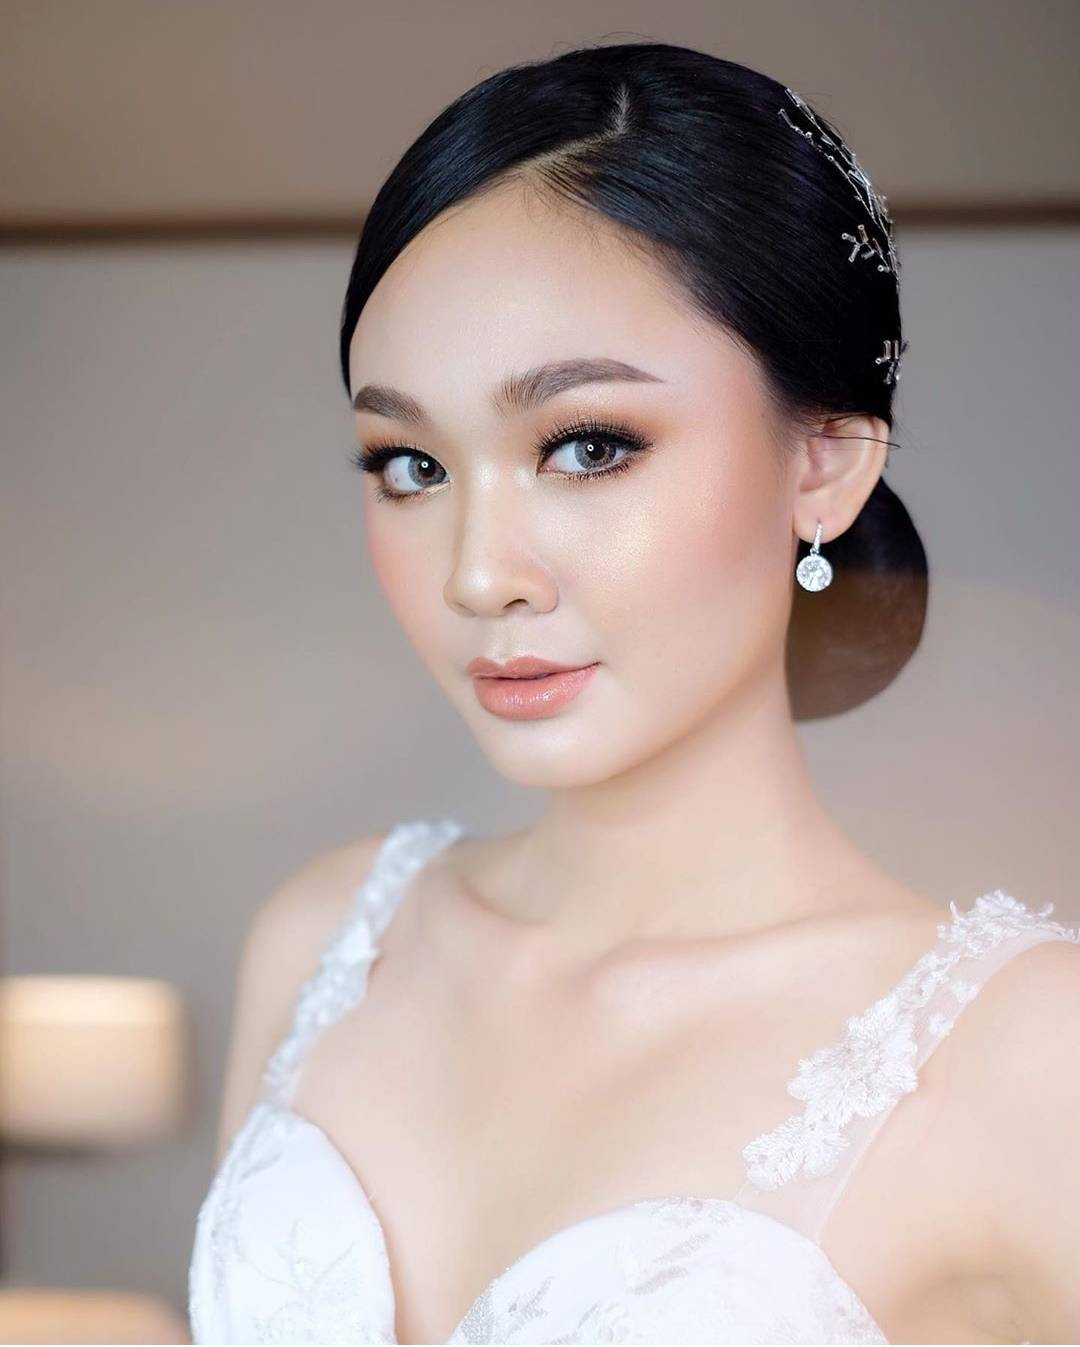 Graduation makeup artist finder thailand